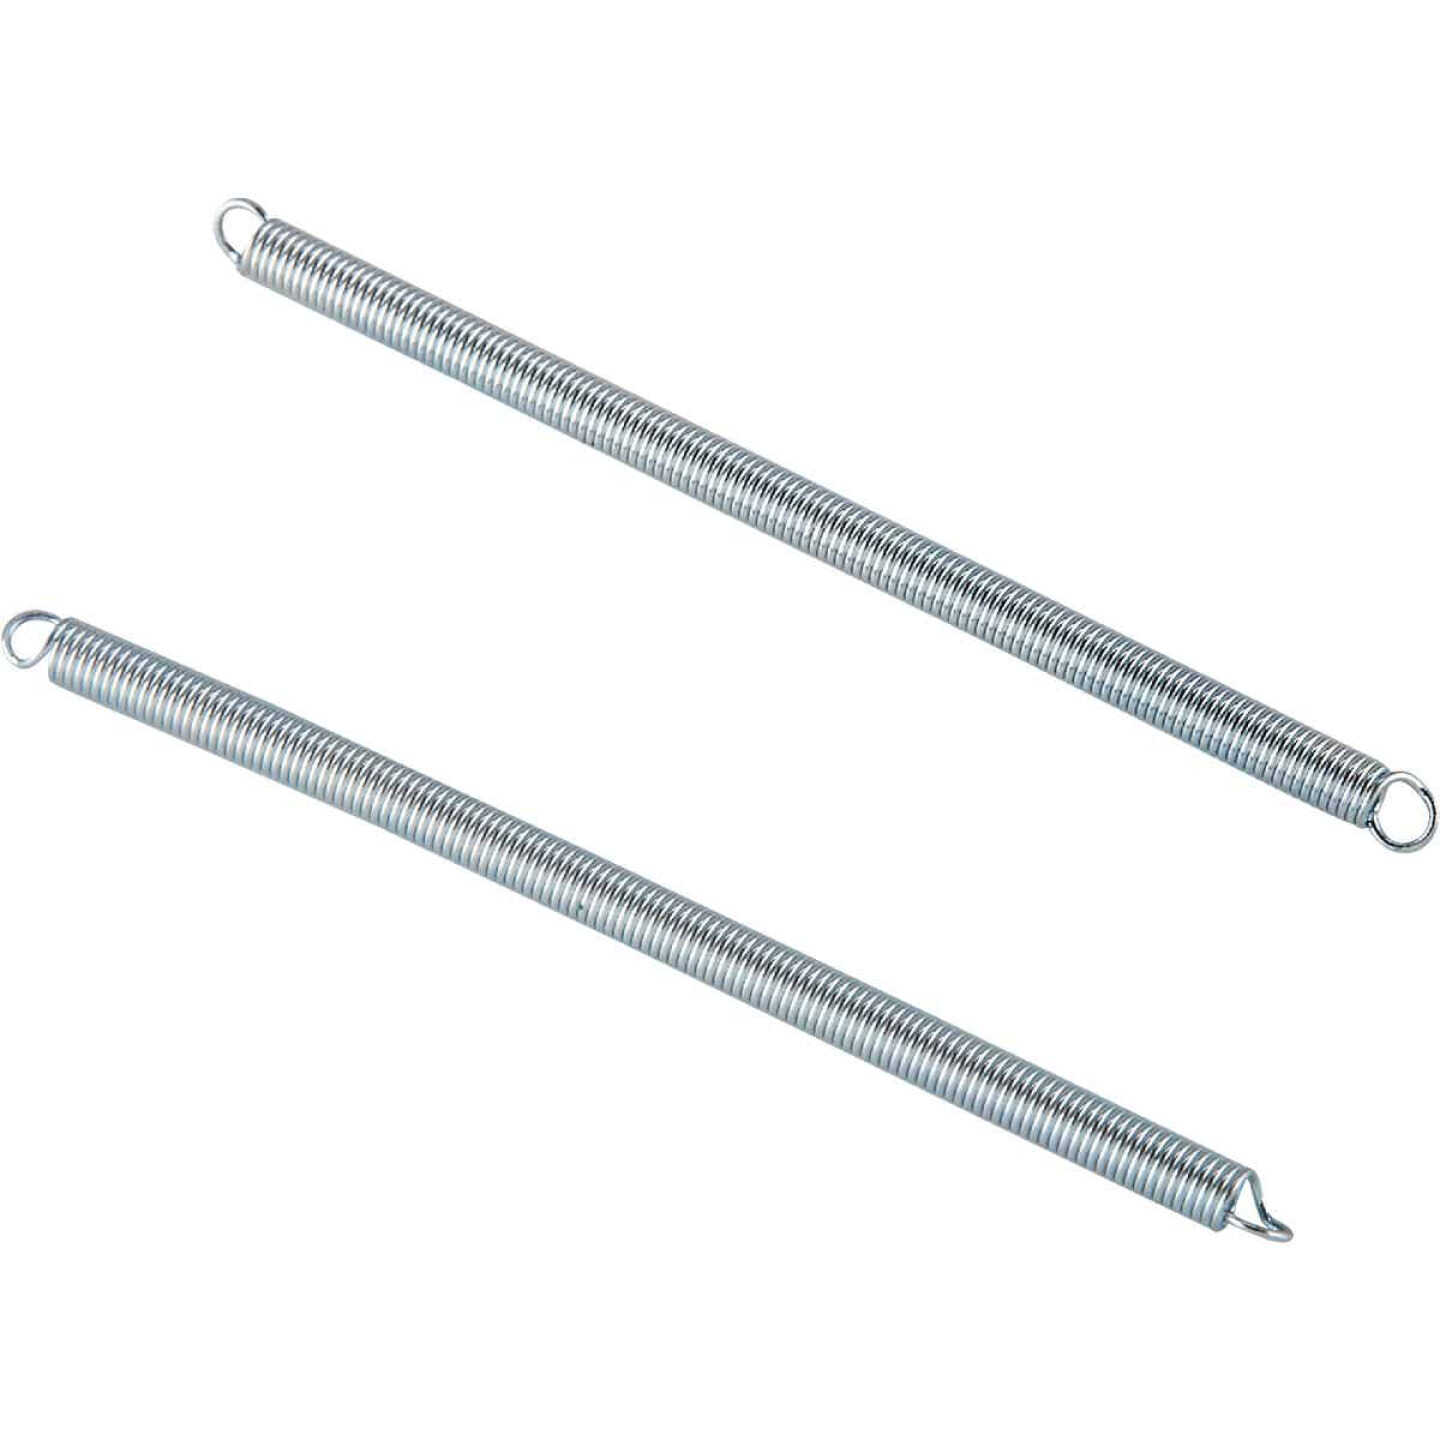 Century Spring 2-1/2 In. x 1/8 In. Extension Spring (2 Count) Image 1